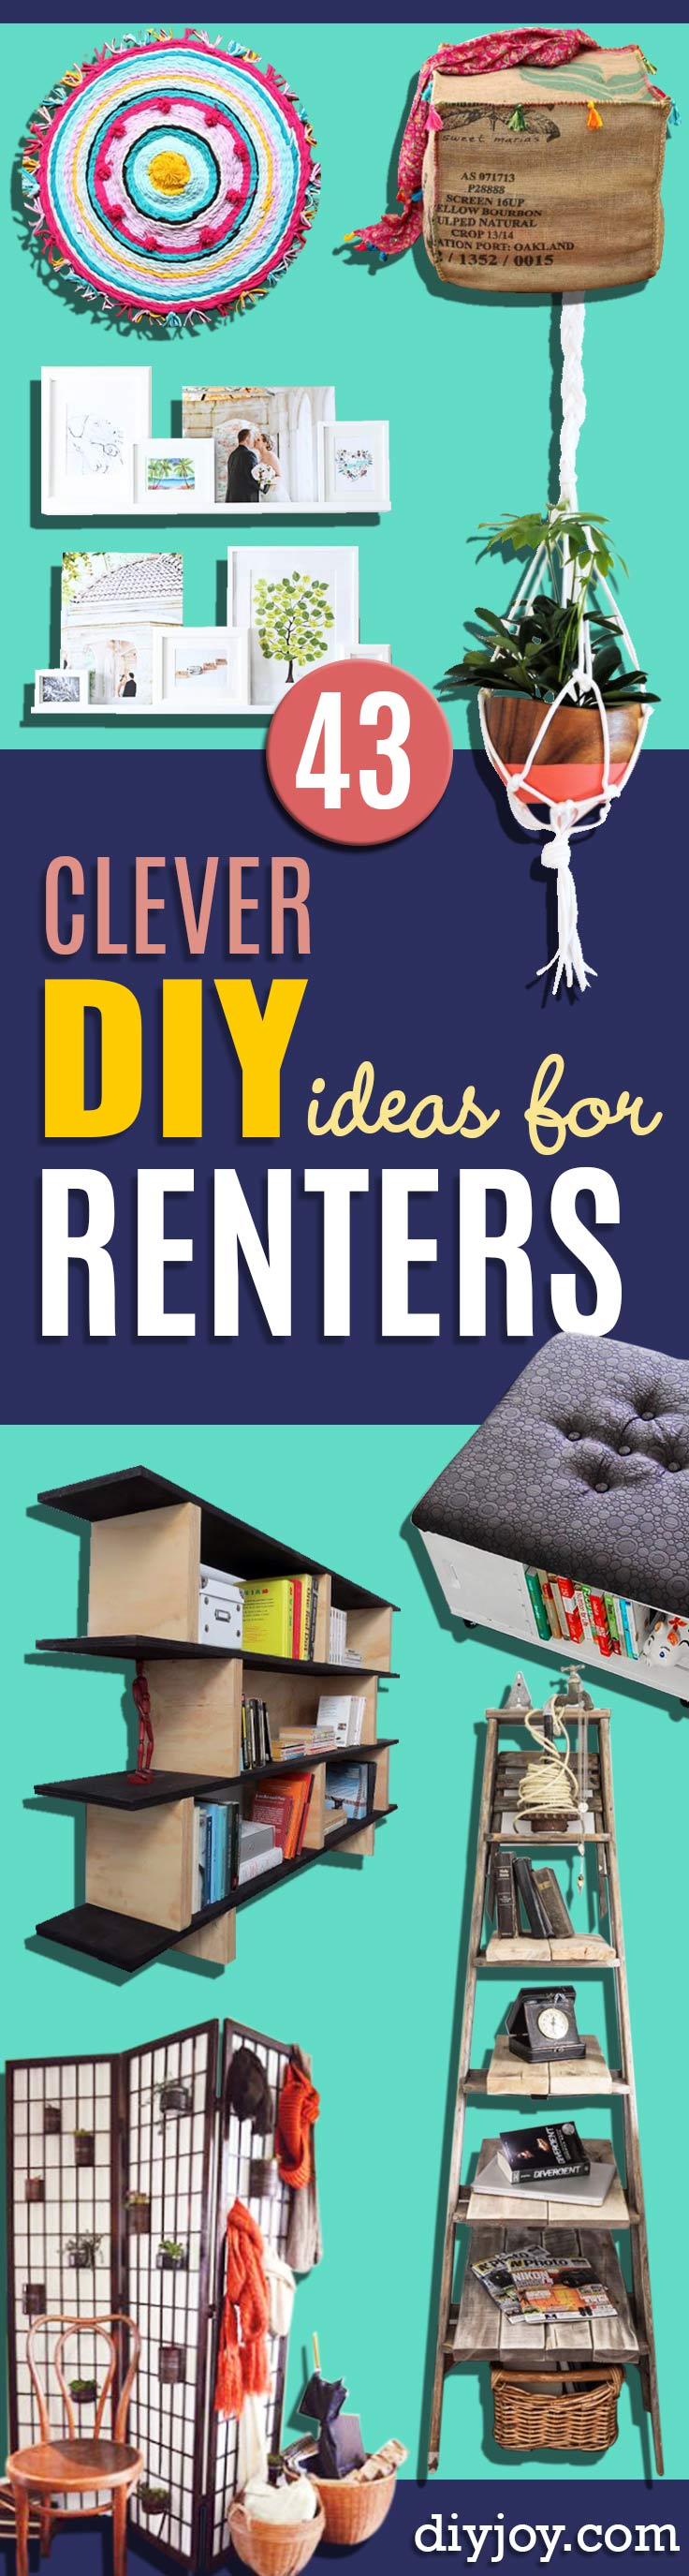 DIY Renters Decor Ideas   Cool DIY Projects For Those Renting Aparments,  Condos Or Dorm